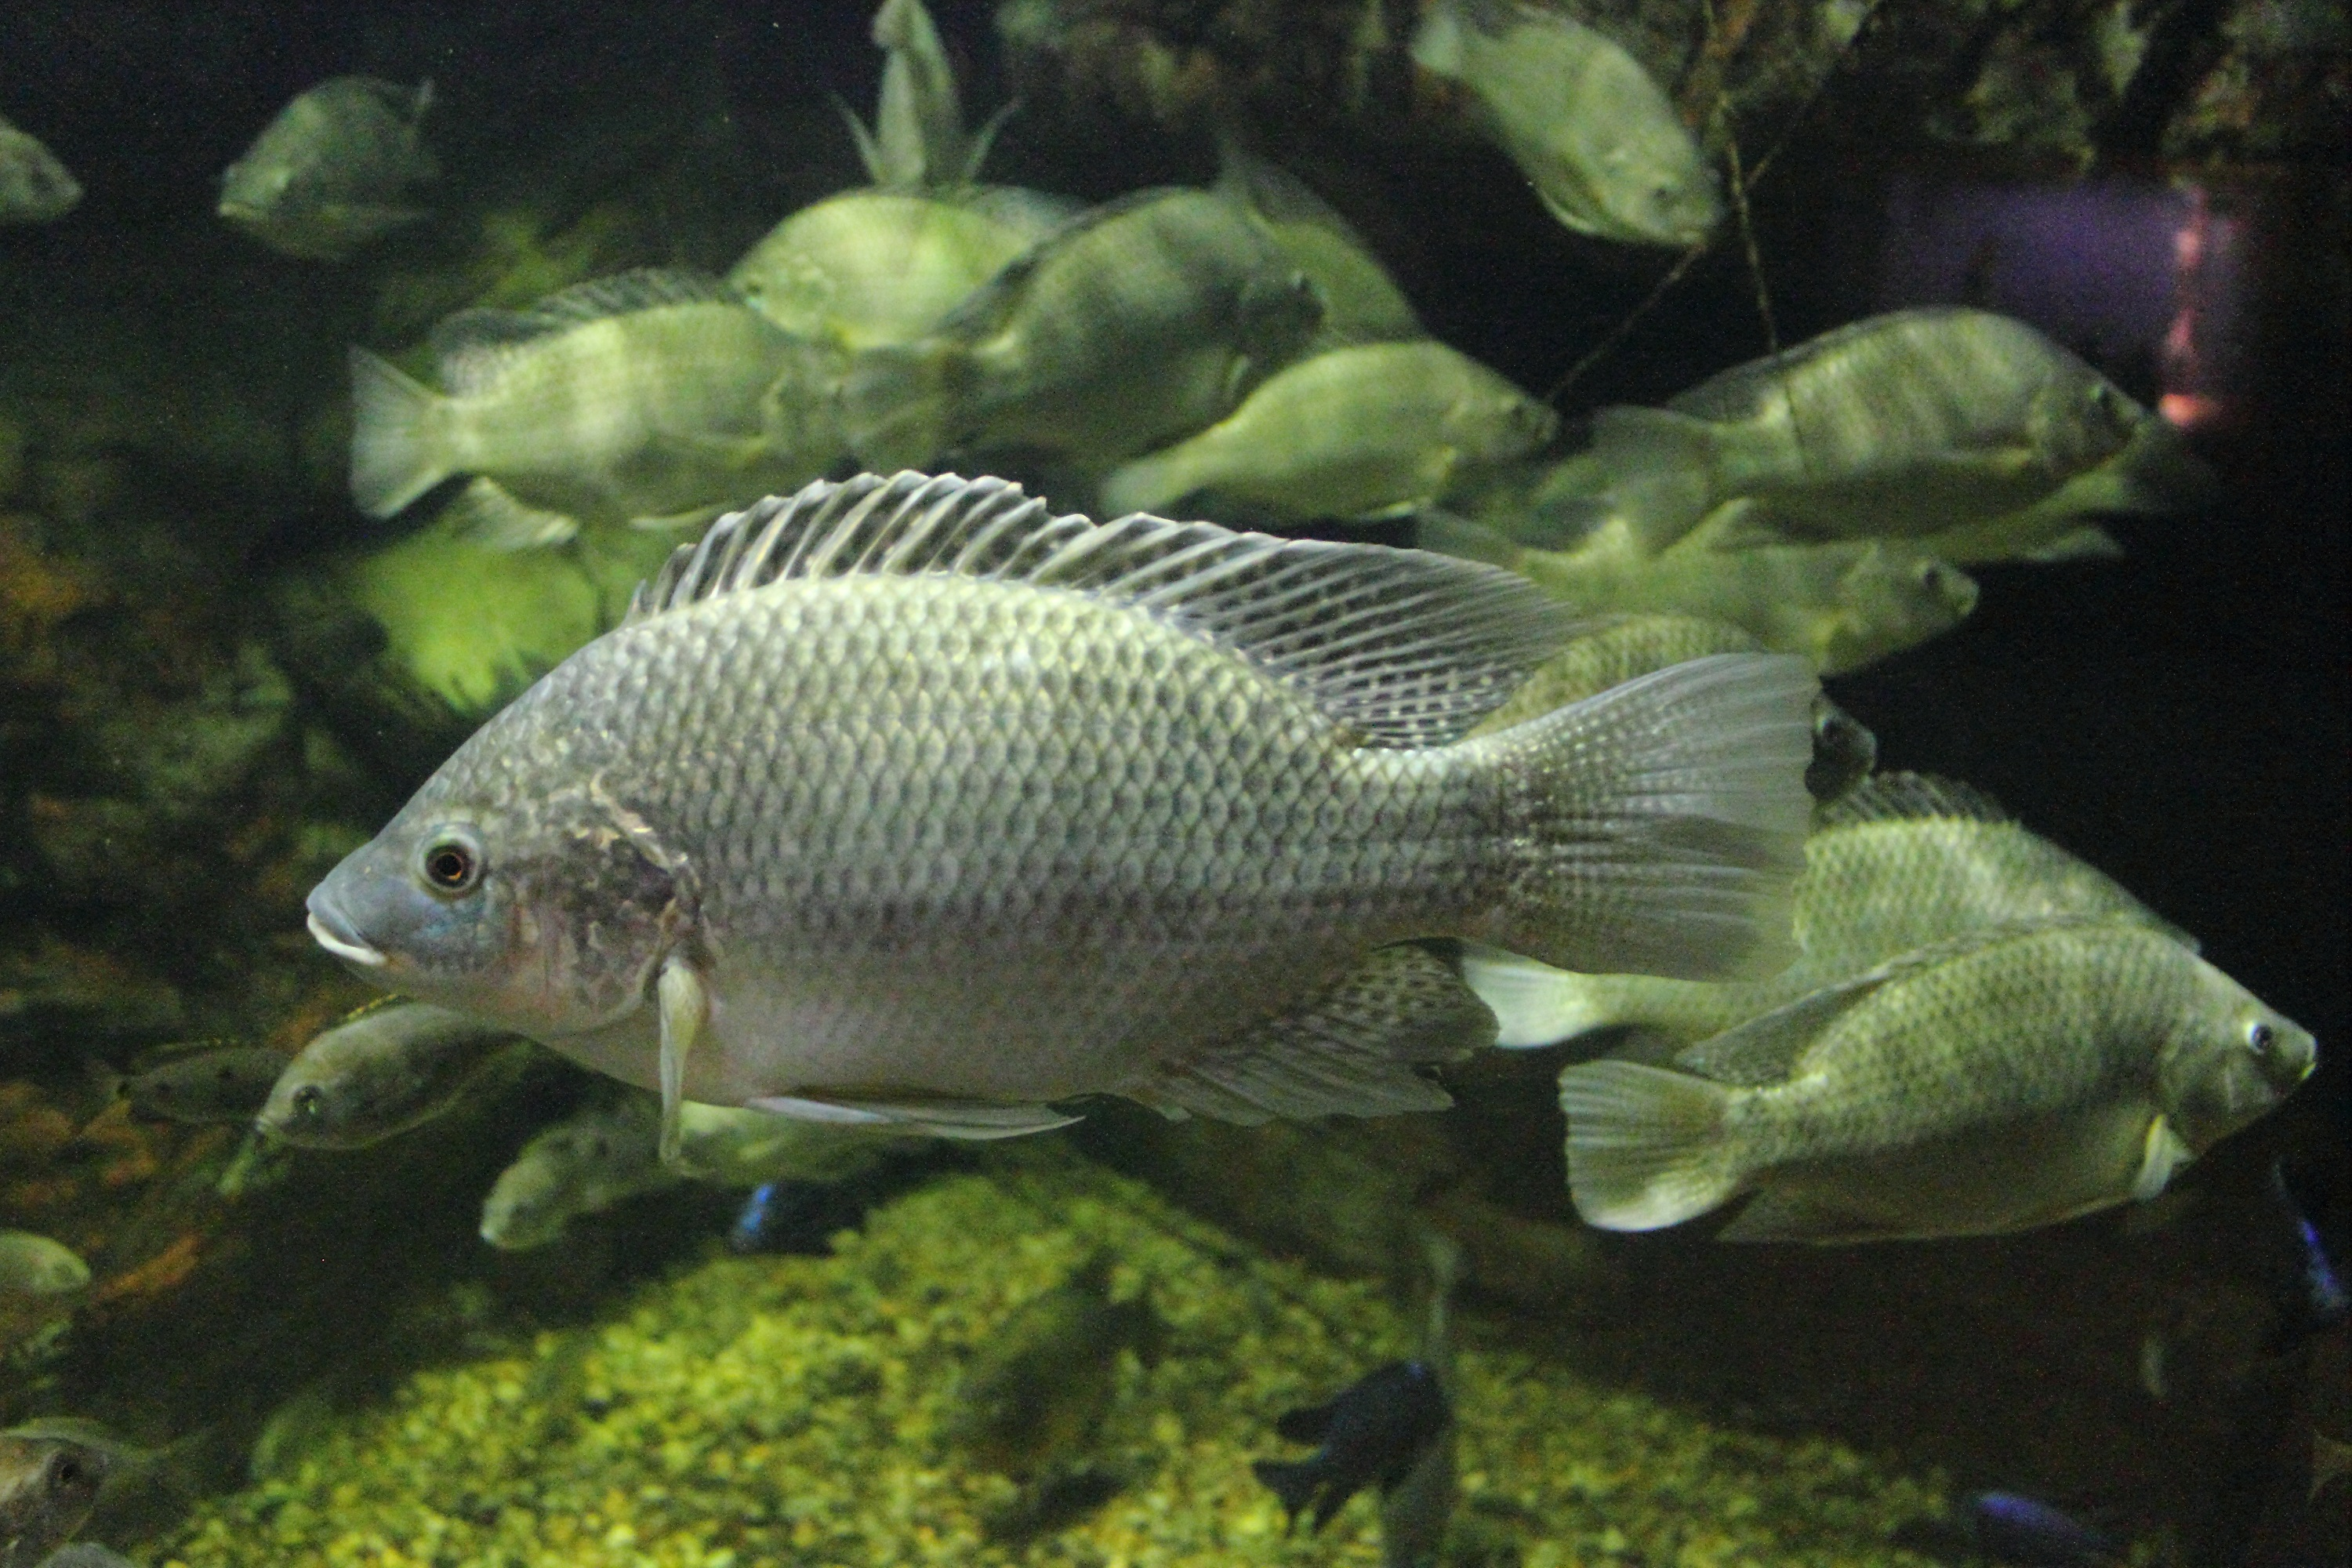 Mozambique tilapia wallpaper